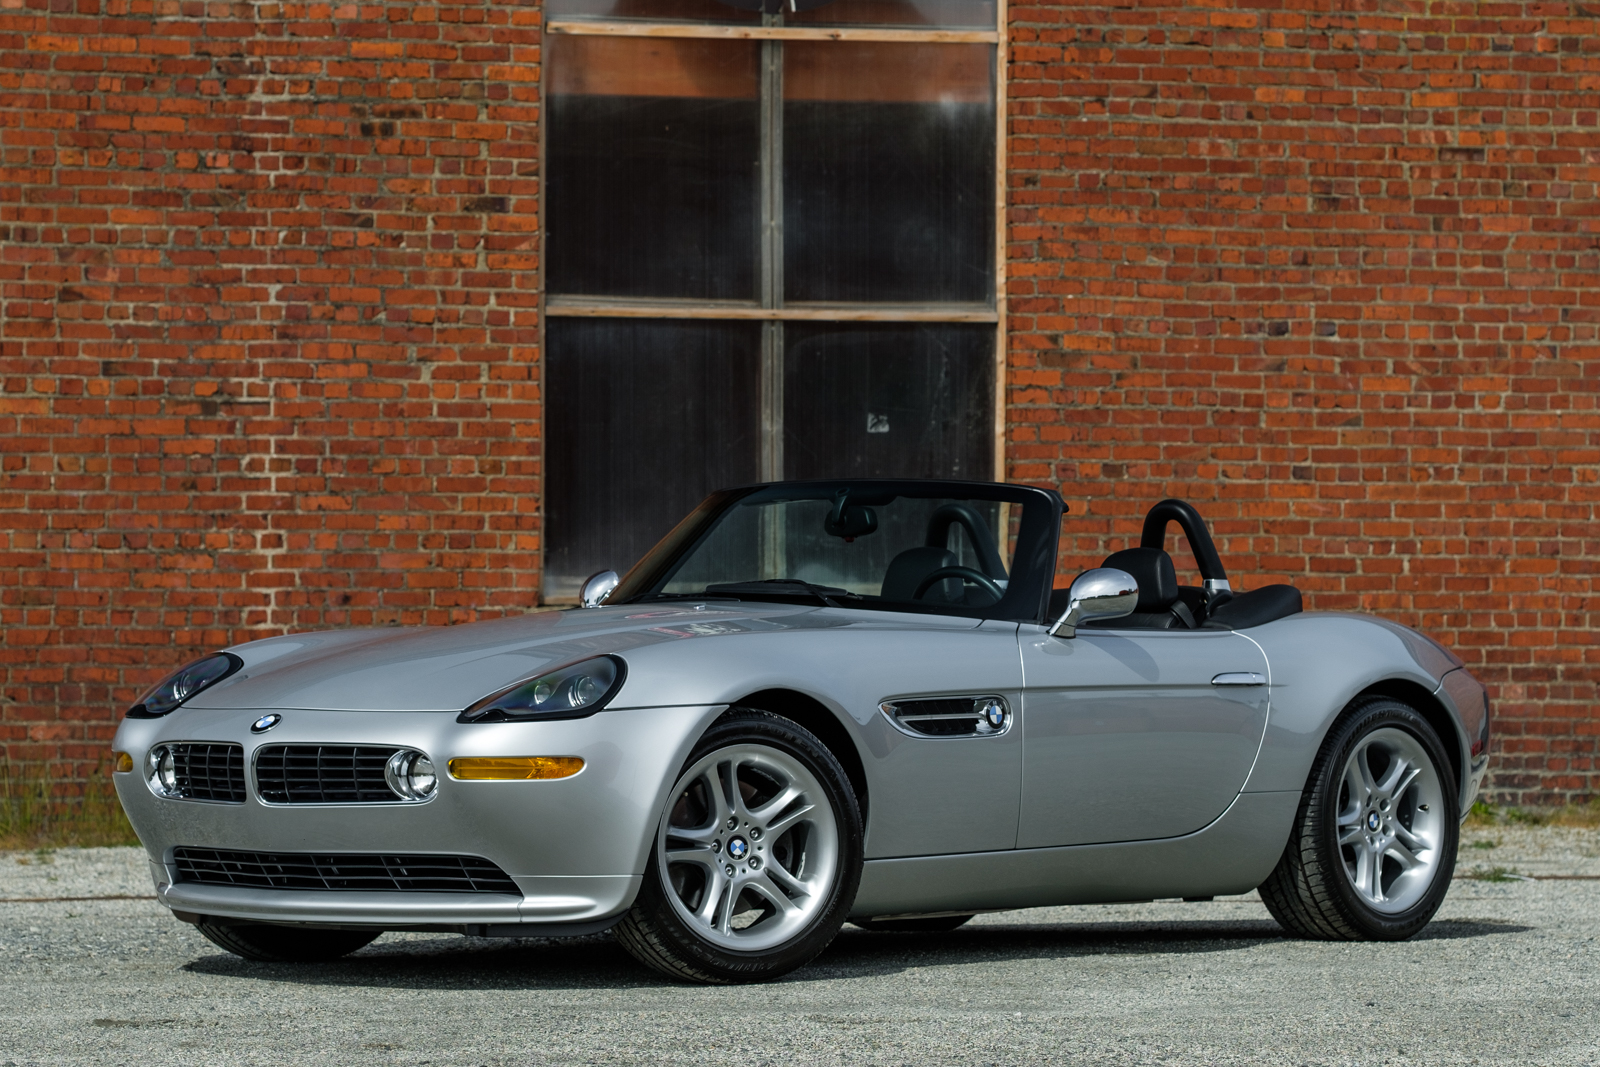 2001 Bmw Z8 Roadster Silver Arrow Cars Ltd